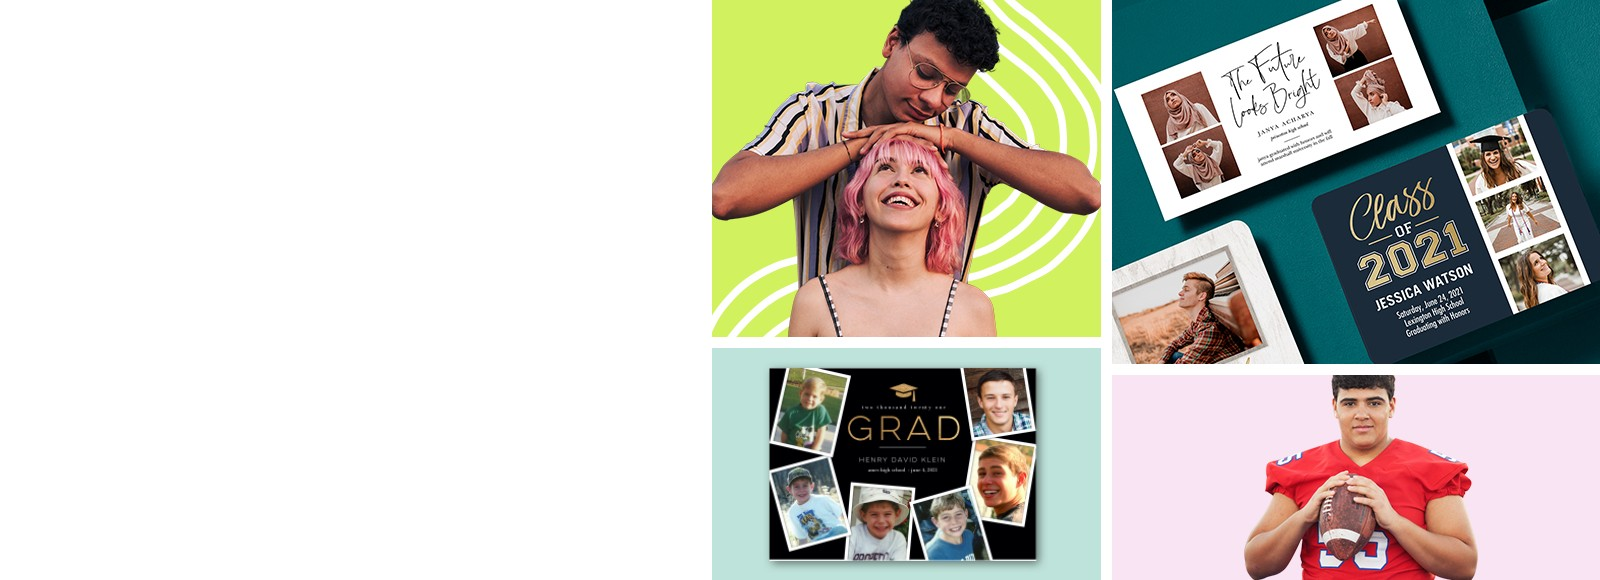 Shutterfly helps you find affordable graduation cards.